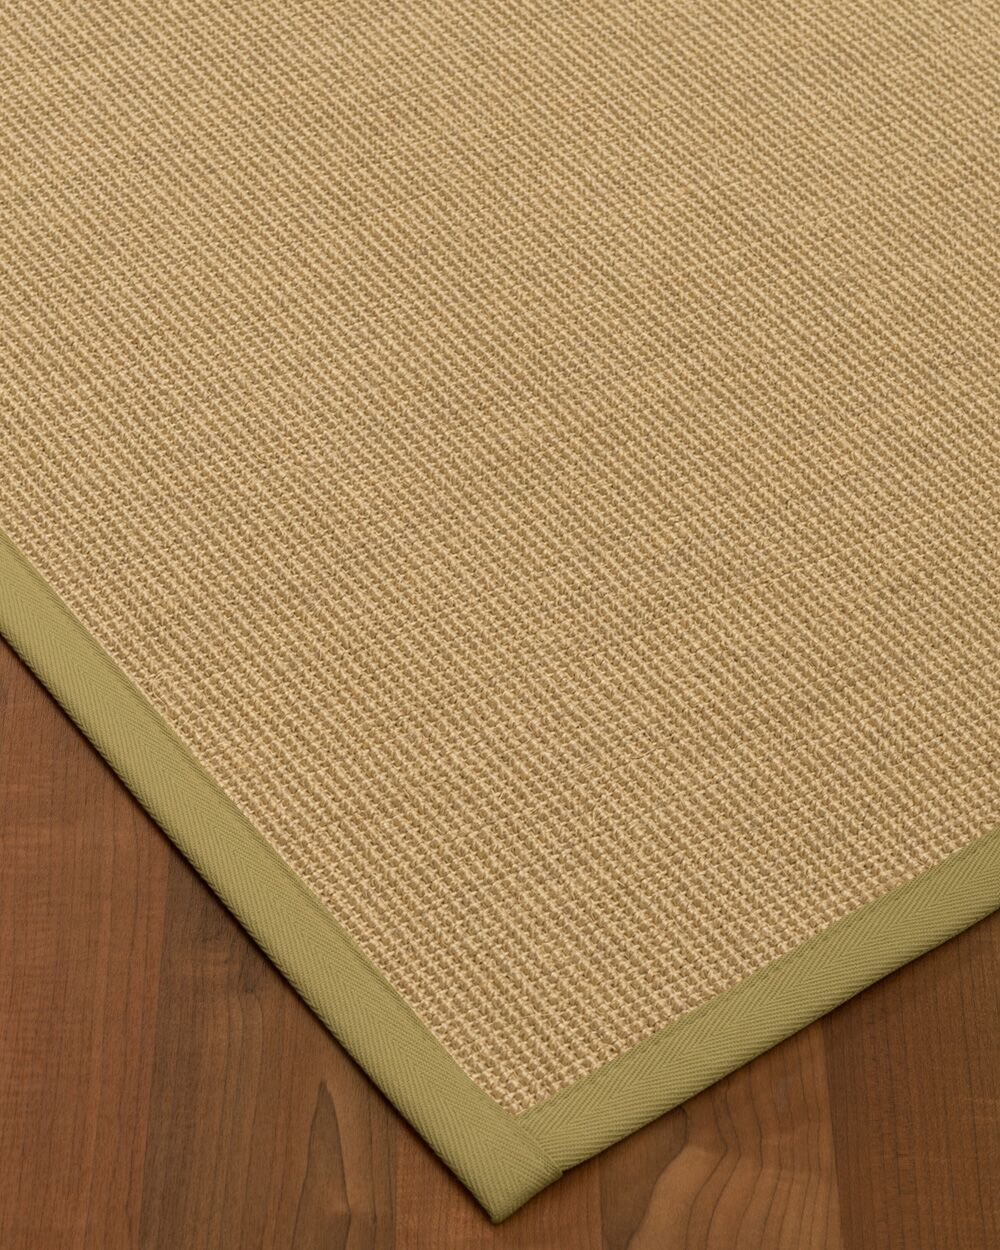 Atwell Border Hand-Woven Beige Area Rug Rug Size: Rectangle 6' x 9', Rug Pad Included: Yes